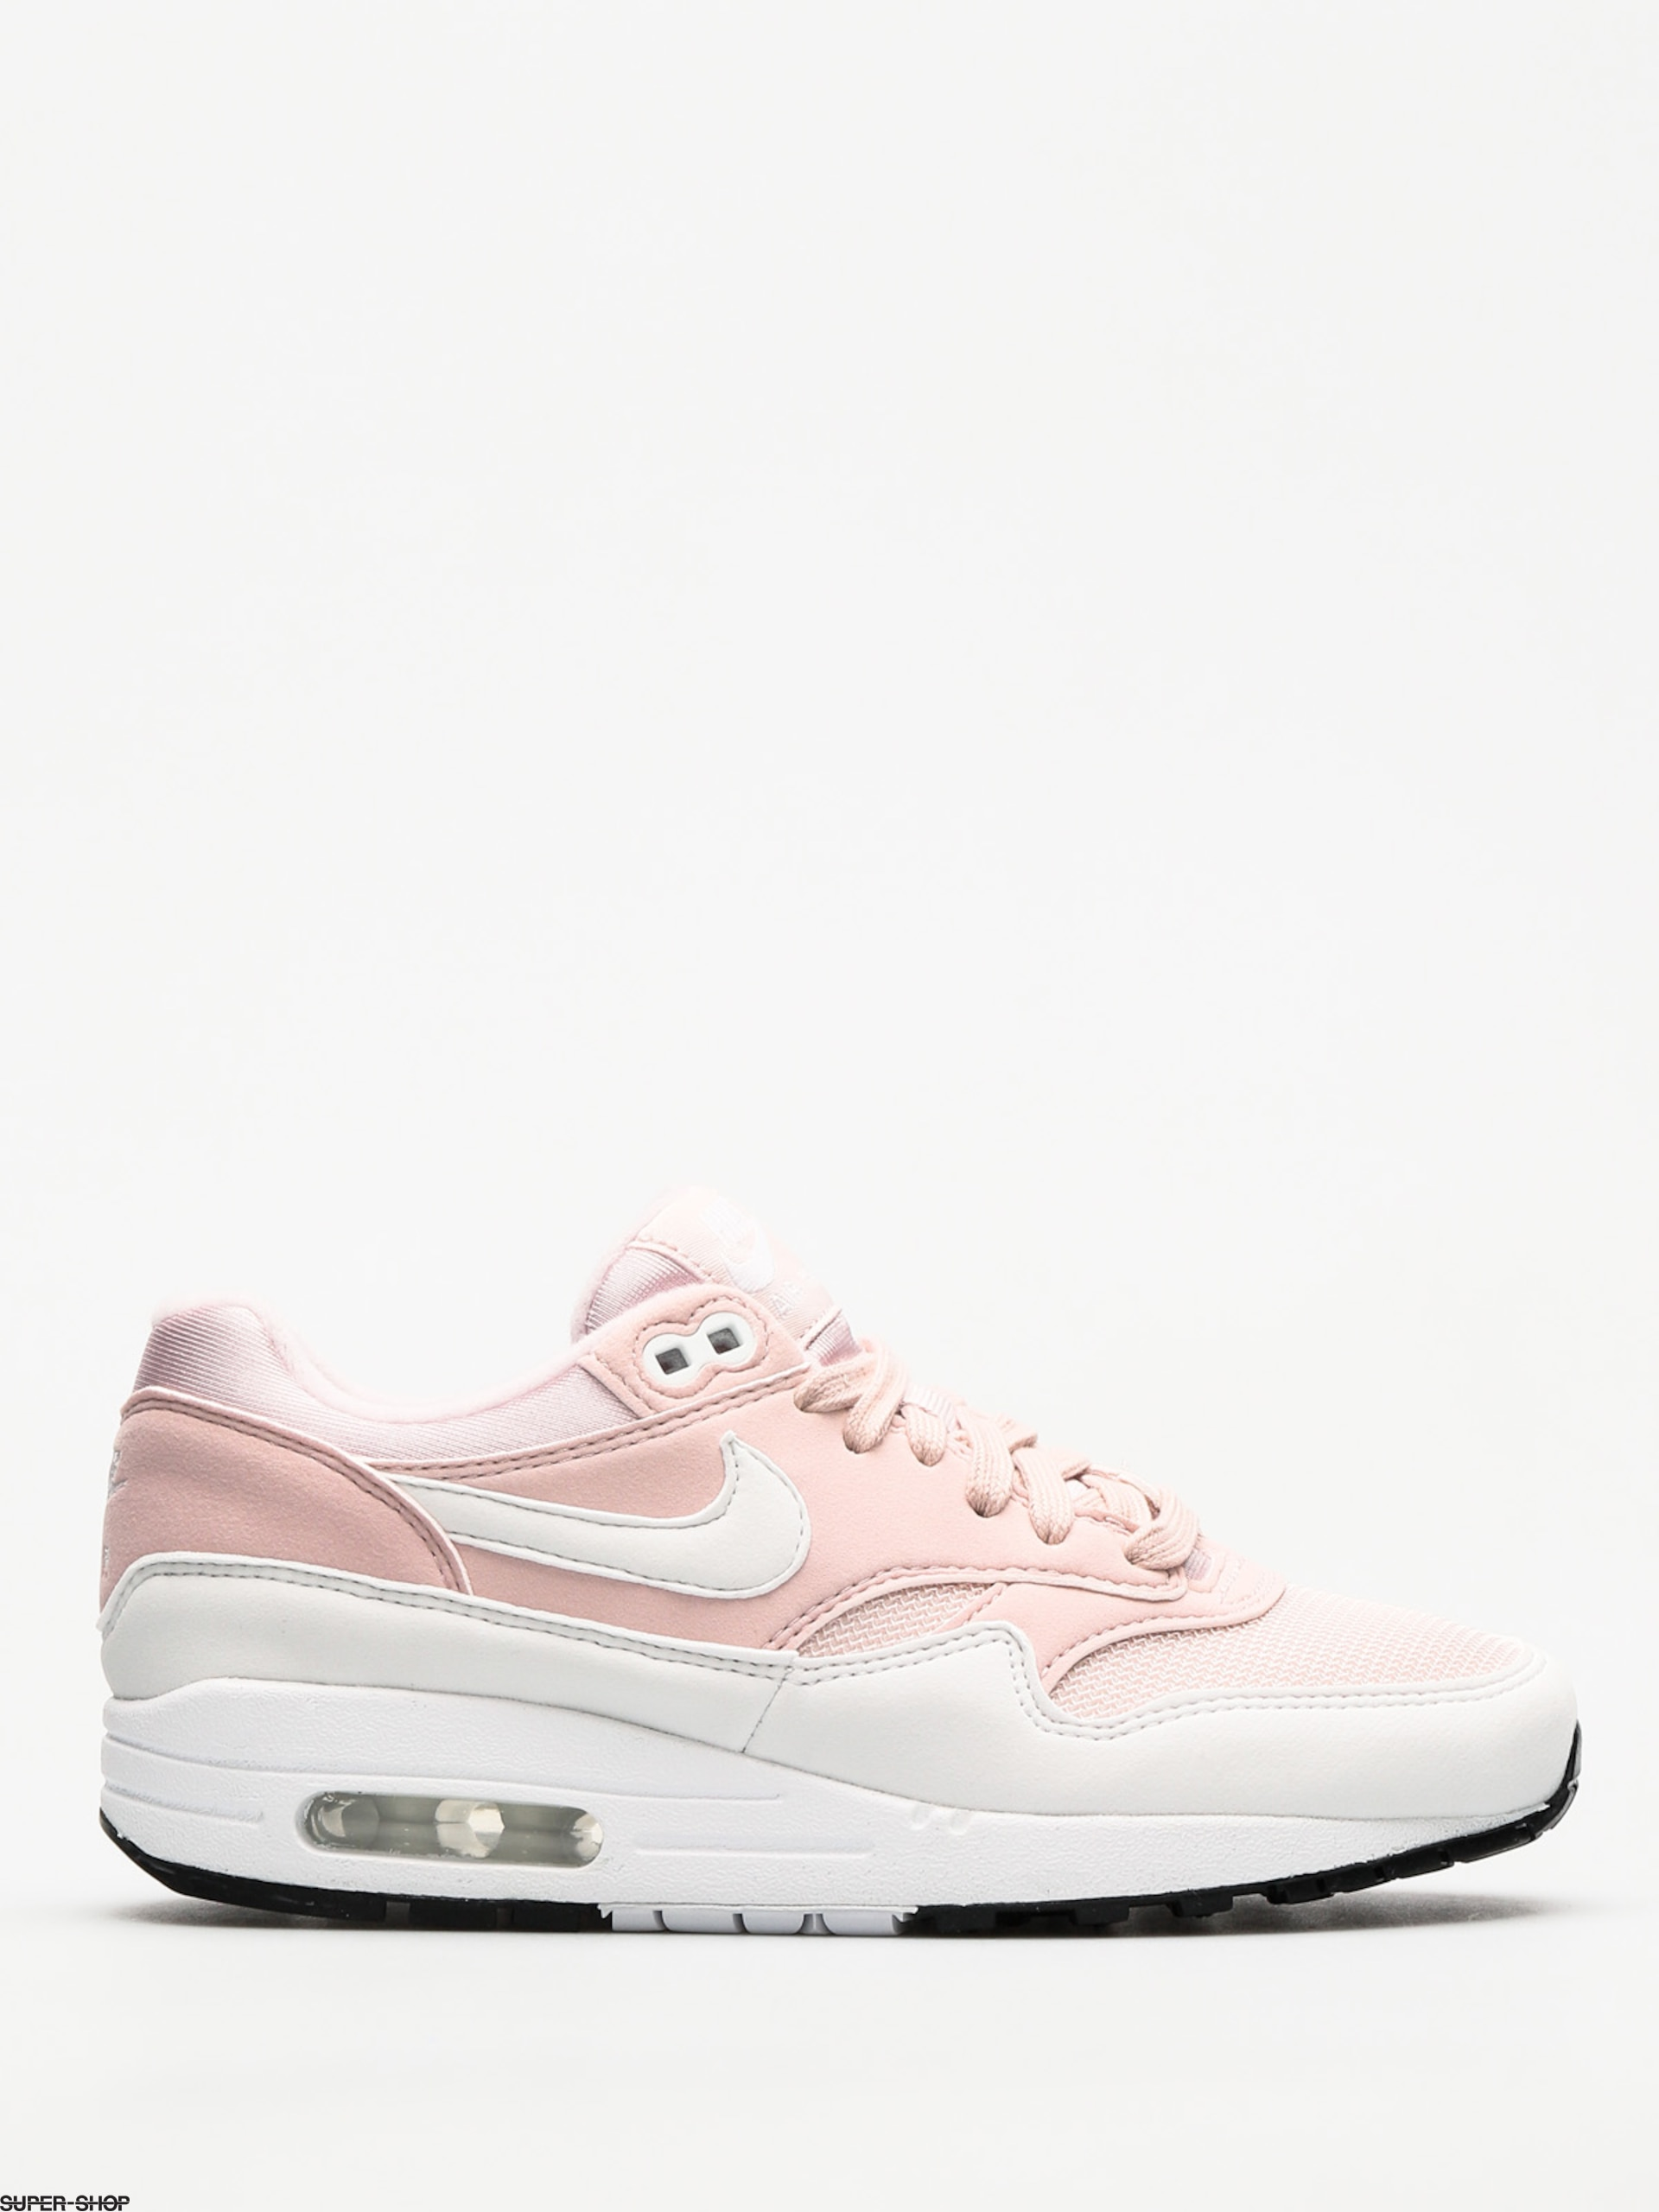 Nike Air Max 1 Shoes Wmn (barely rose/white)